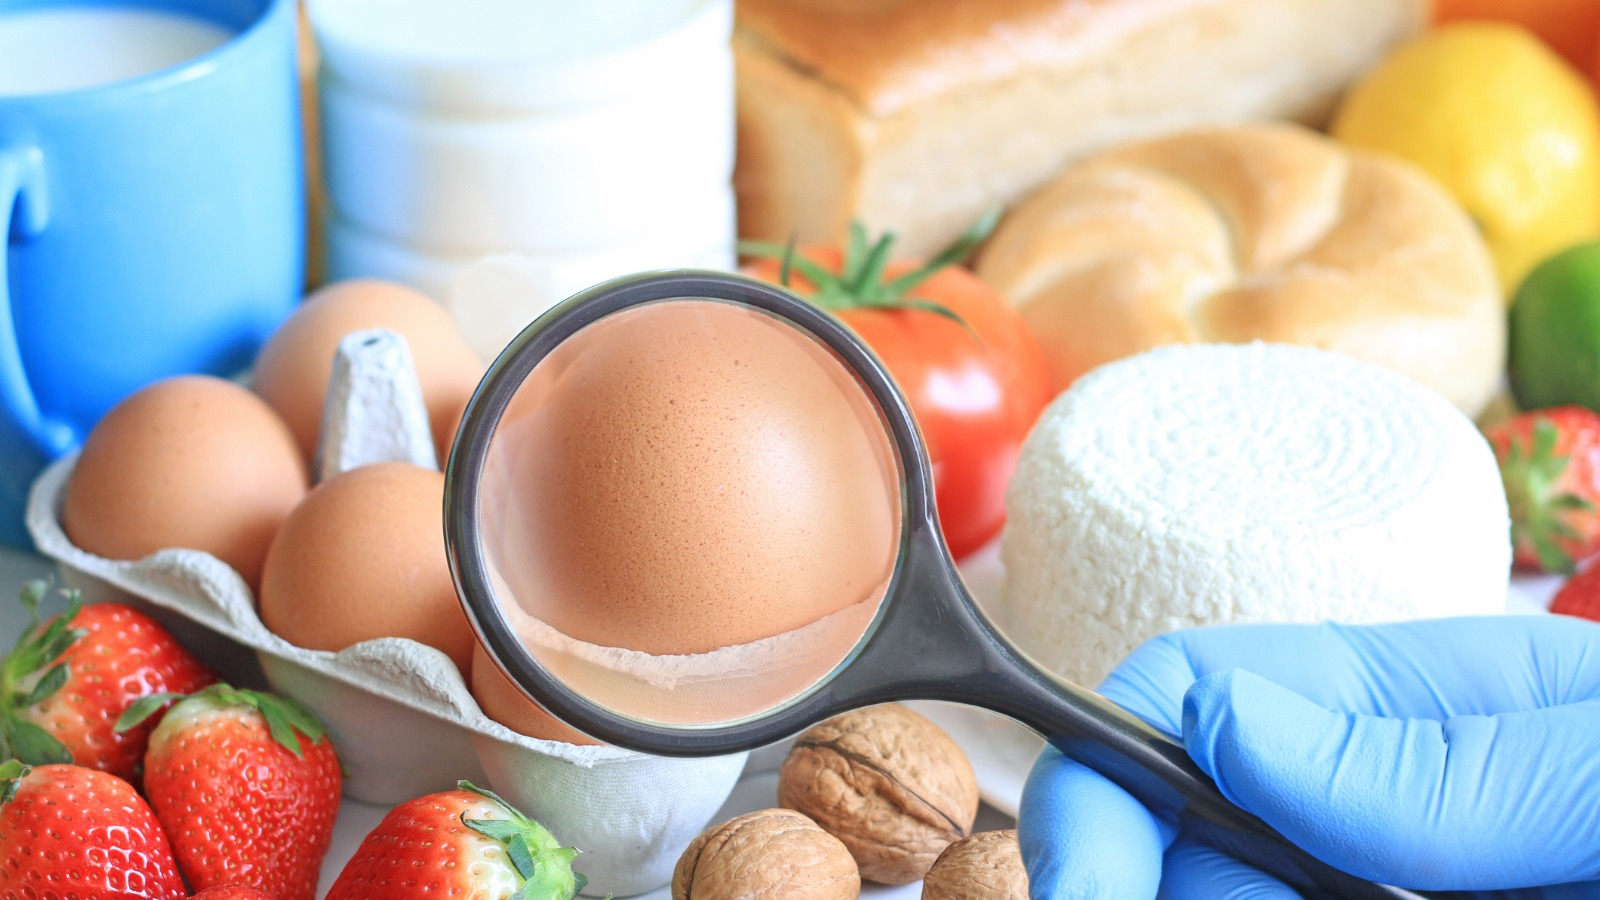 how should food be stored to avoid cross-contamination